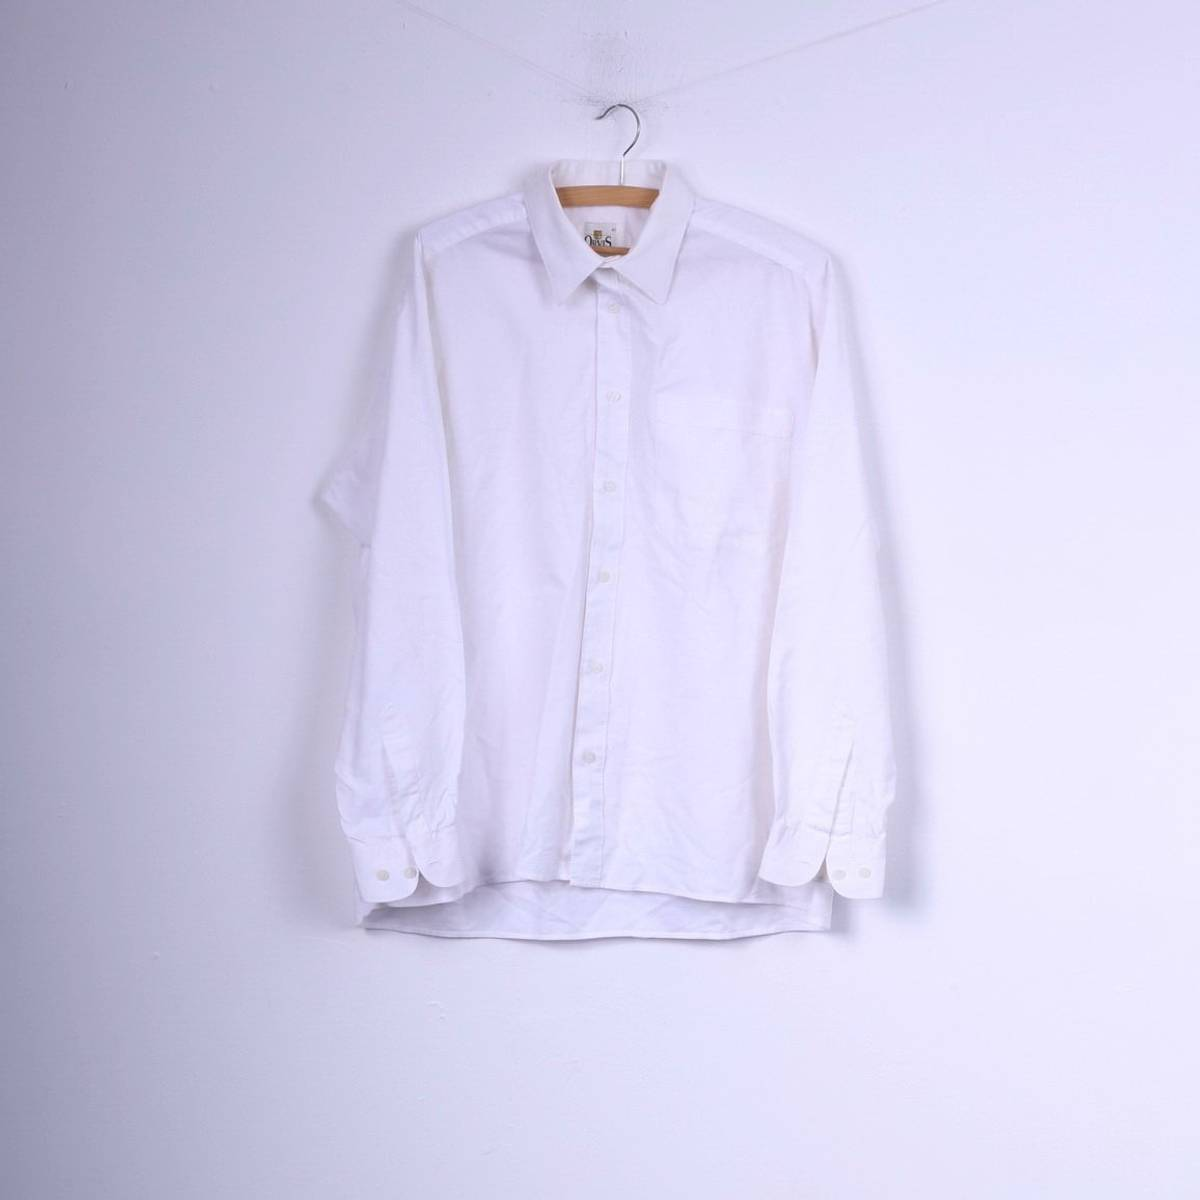 Orvis Orvis Mens 41 2xl Casual Shirt White Cotton Top Long Sleeve